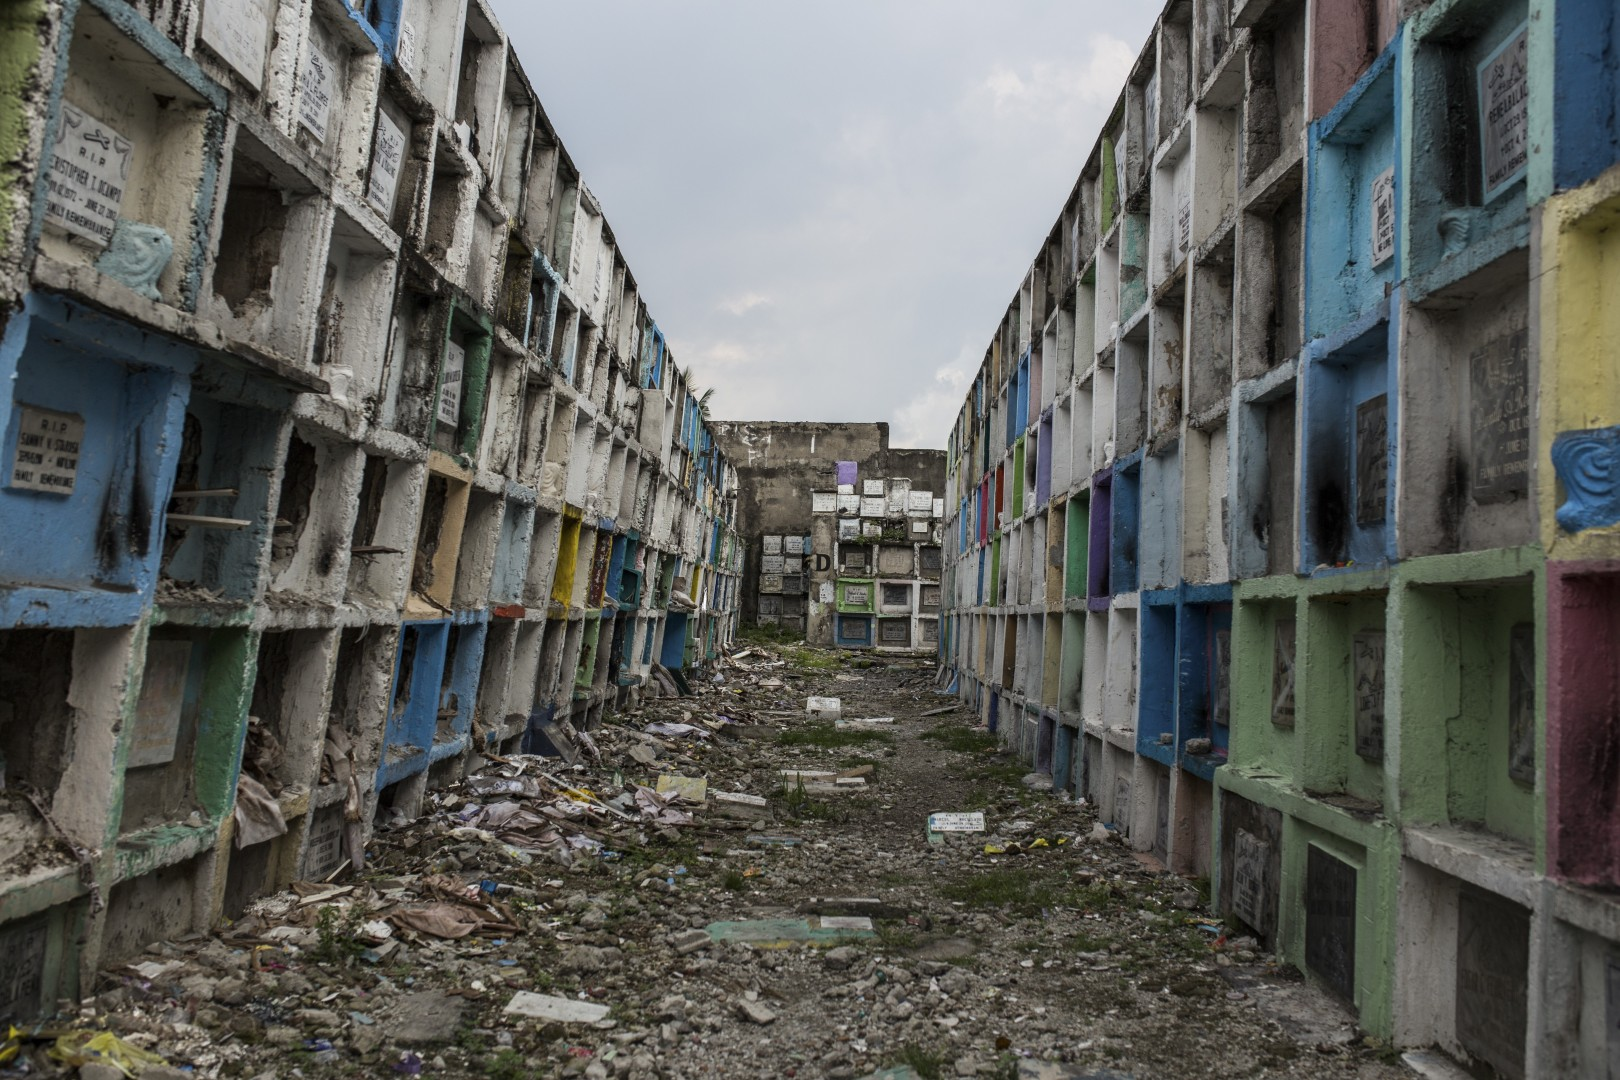 Manila's 'apartment tombs', where the poor bury their dead